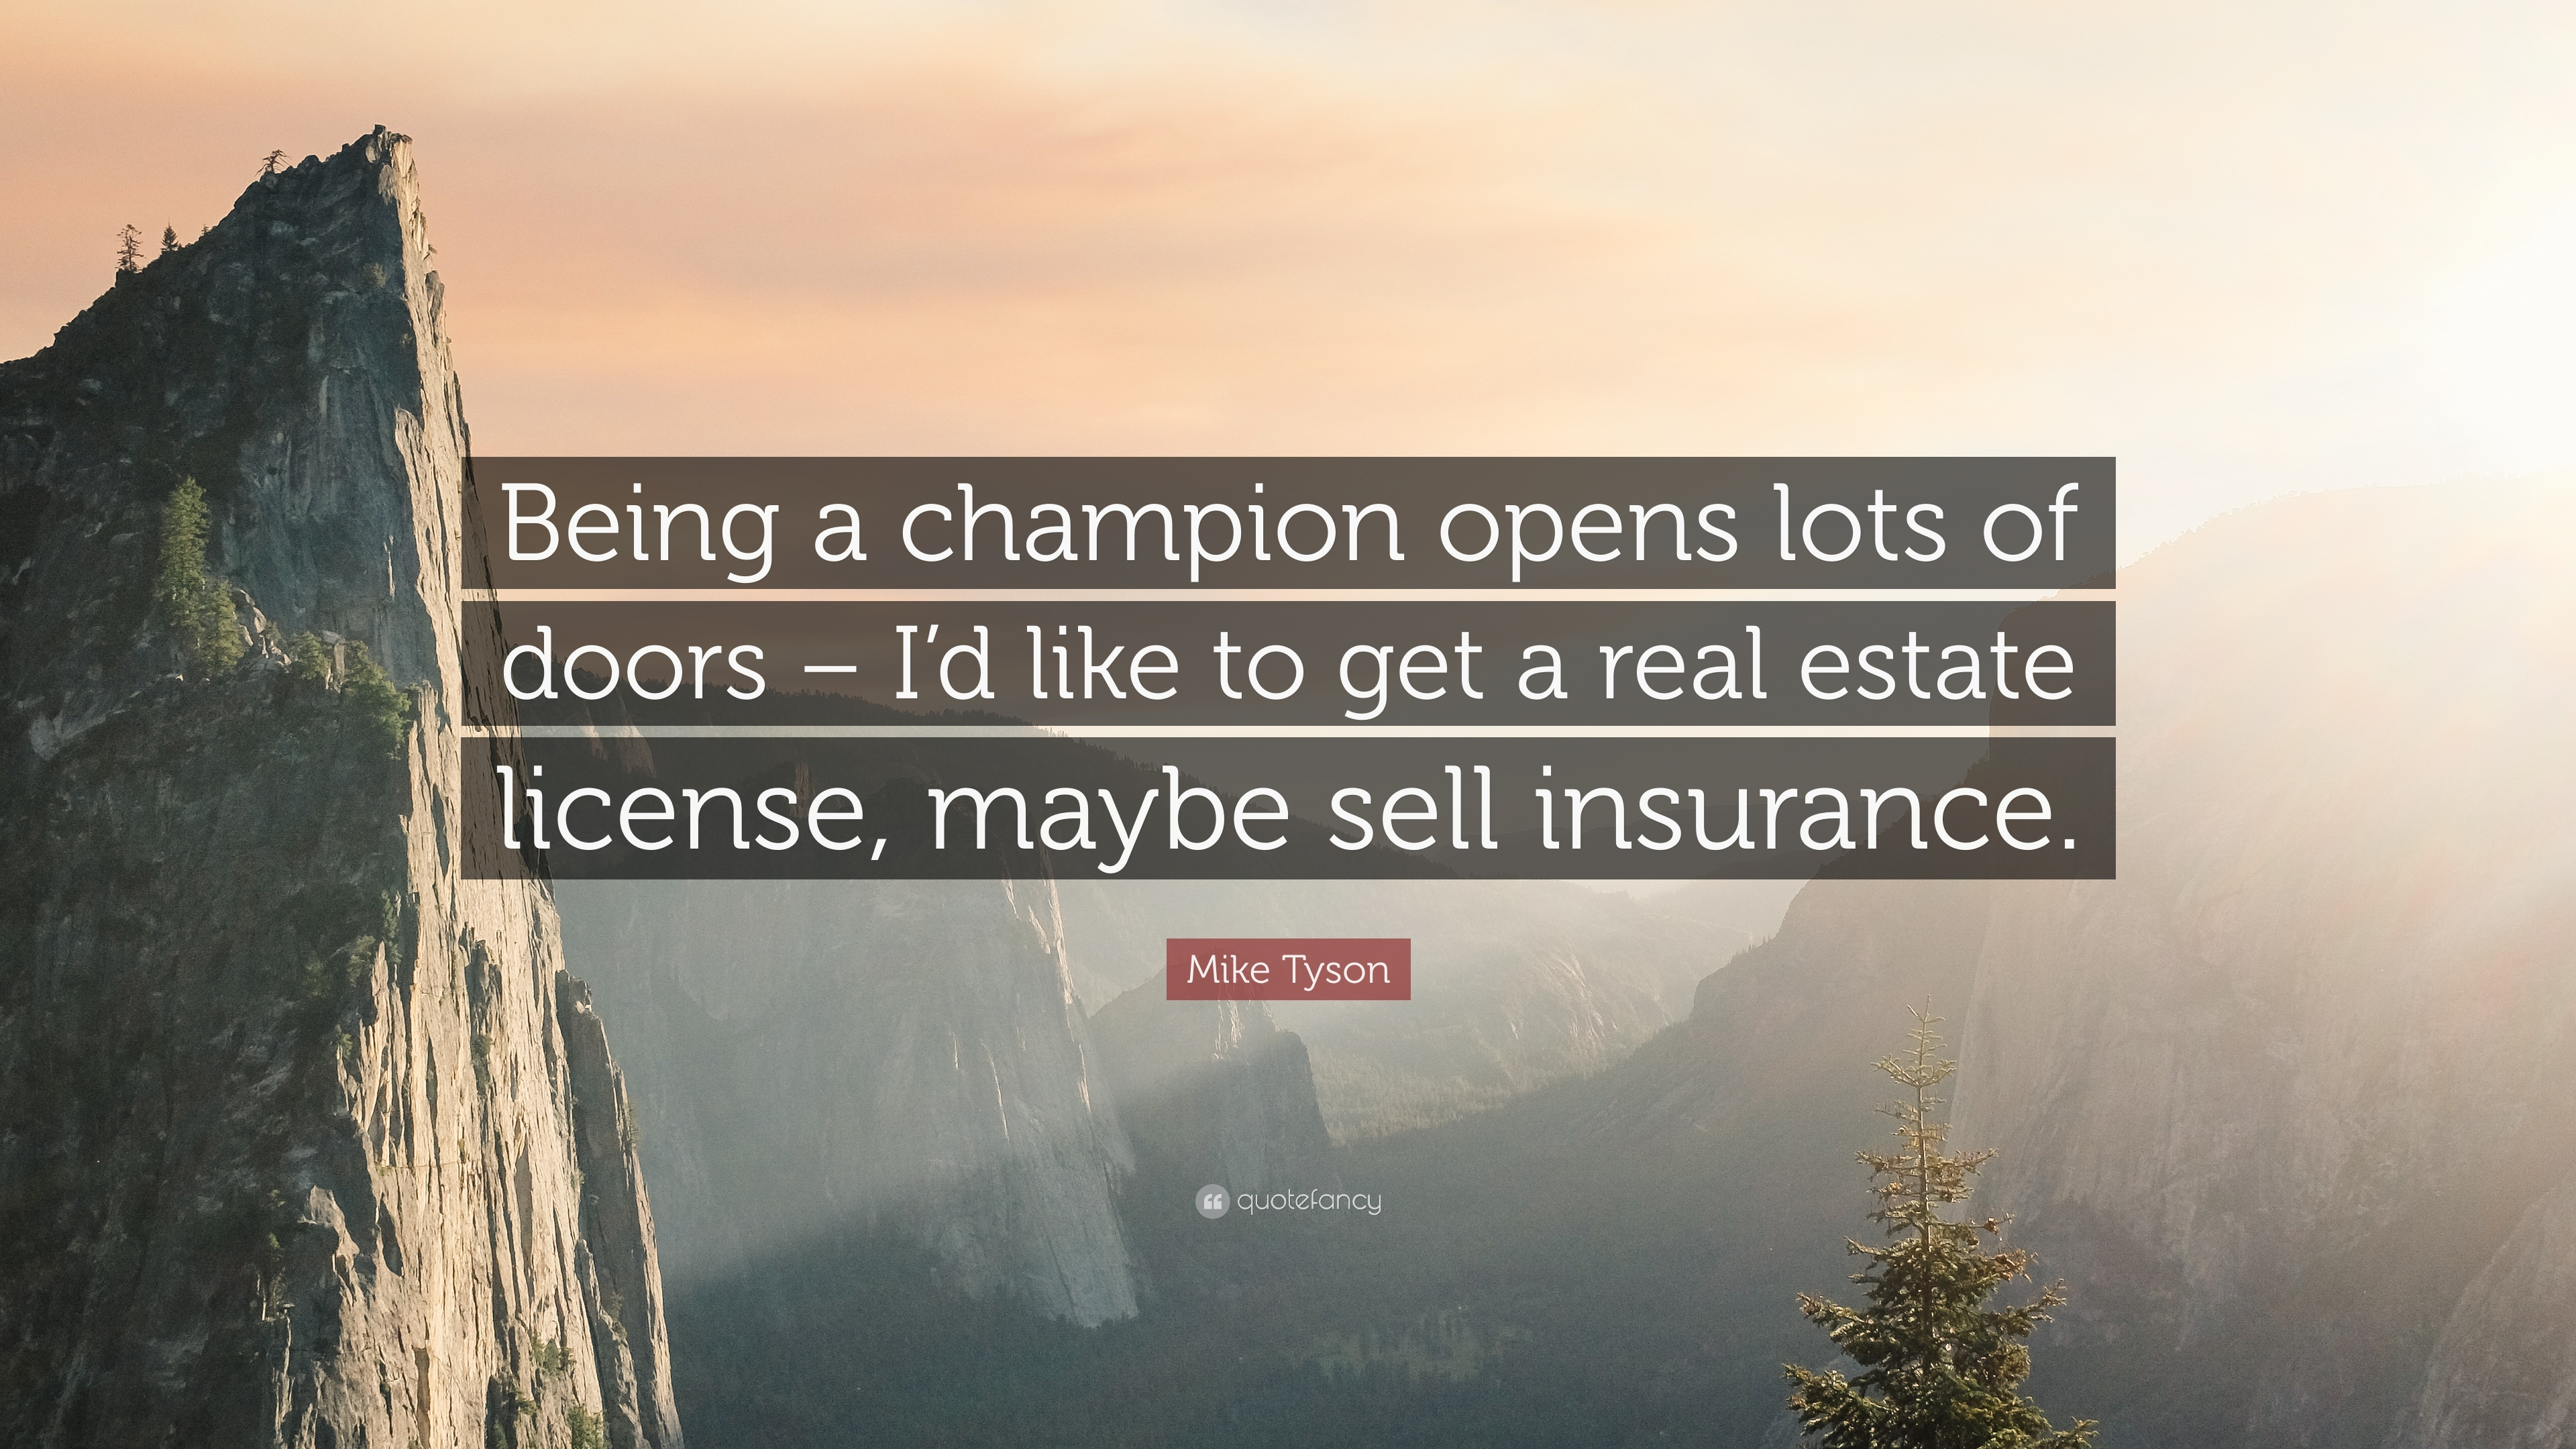 Mike Tyson Quote u201cBeing a ch&ion opens lots of doors u2013 Iu0027d & Mike Tyson Quote: u201cBeing a champion opens lots of doors u2013 Iu0027d like ...